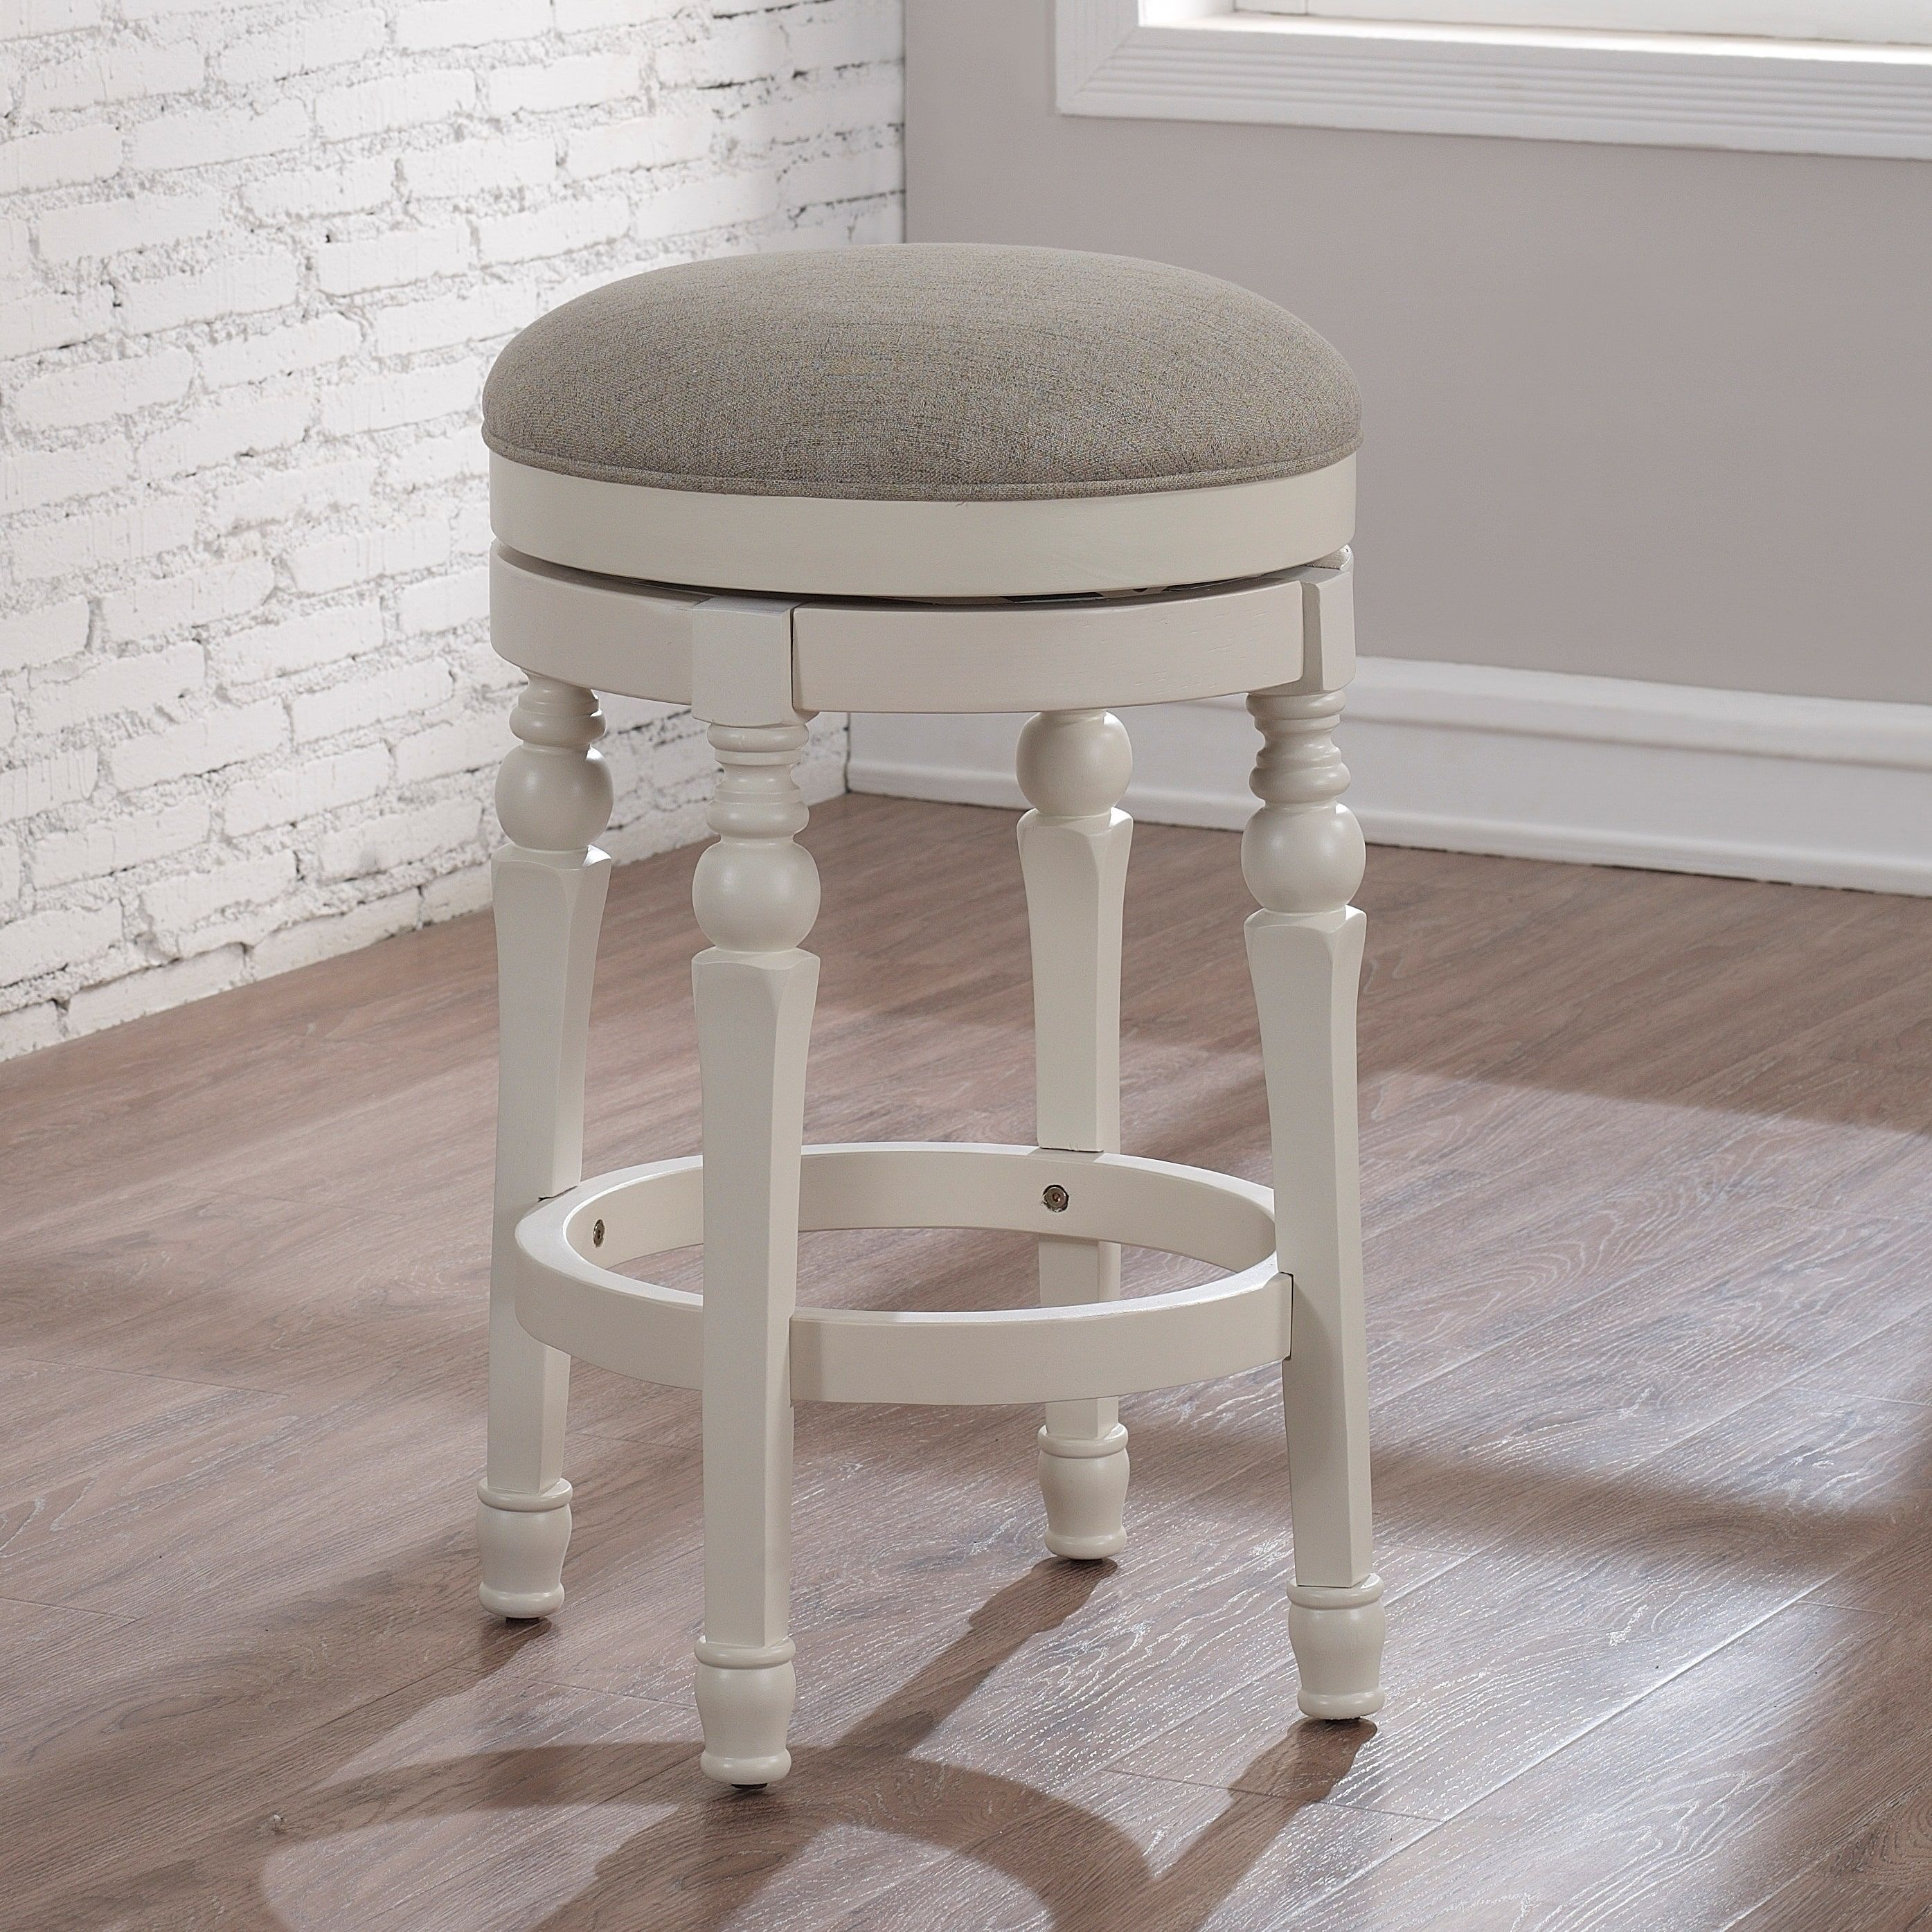 Pleasing Carella 26 Inch Backless Counter Stool By Greyson Living Bralicious Painted Fabric Chair Ideas Braliciousco